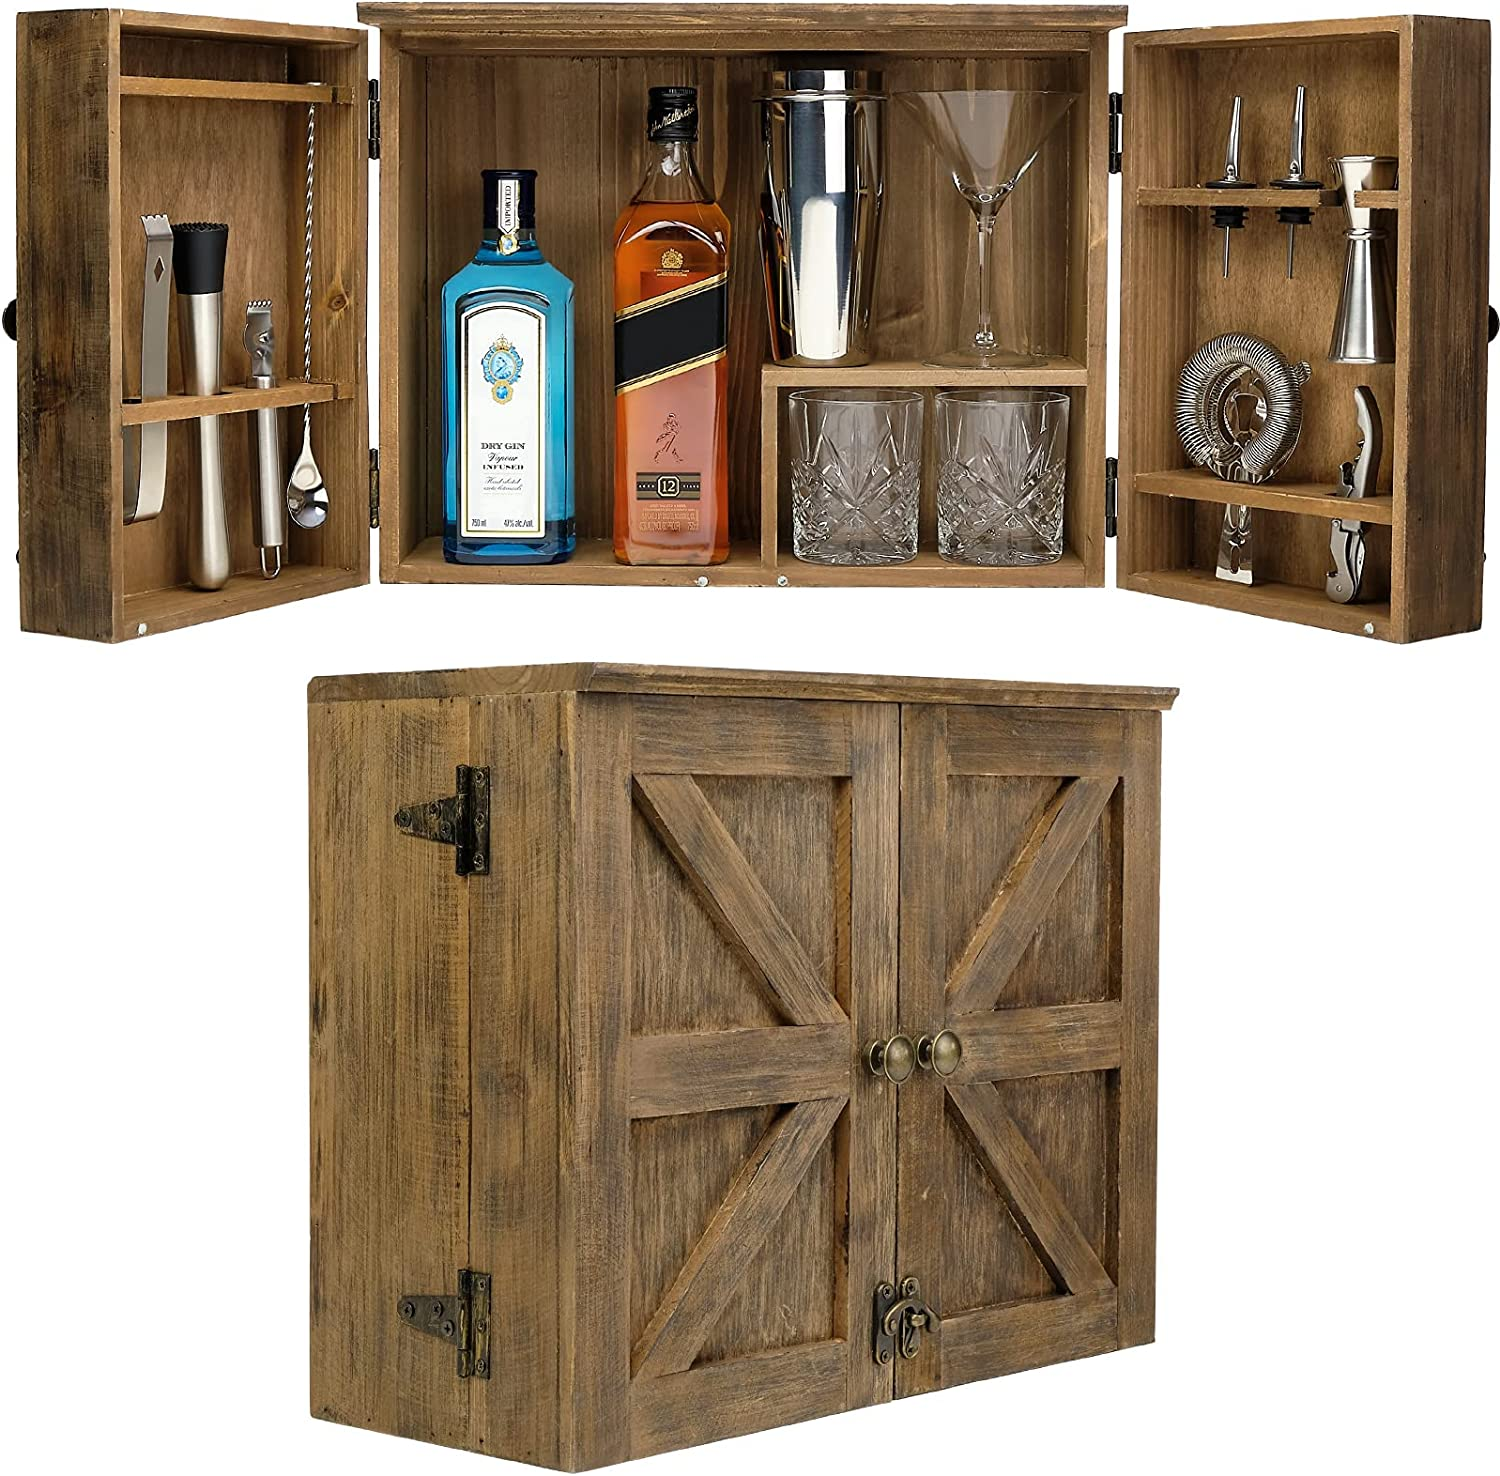 Barndoor Bartender Cabinet with 10 Piece Bar Tool Set - Rustic Brown - The Perfect Kit for Home Bartenders